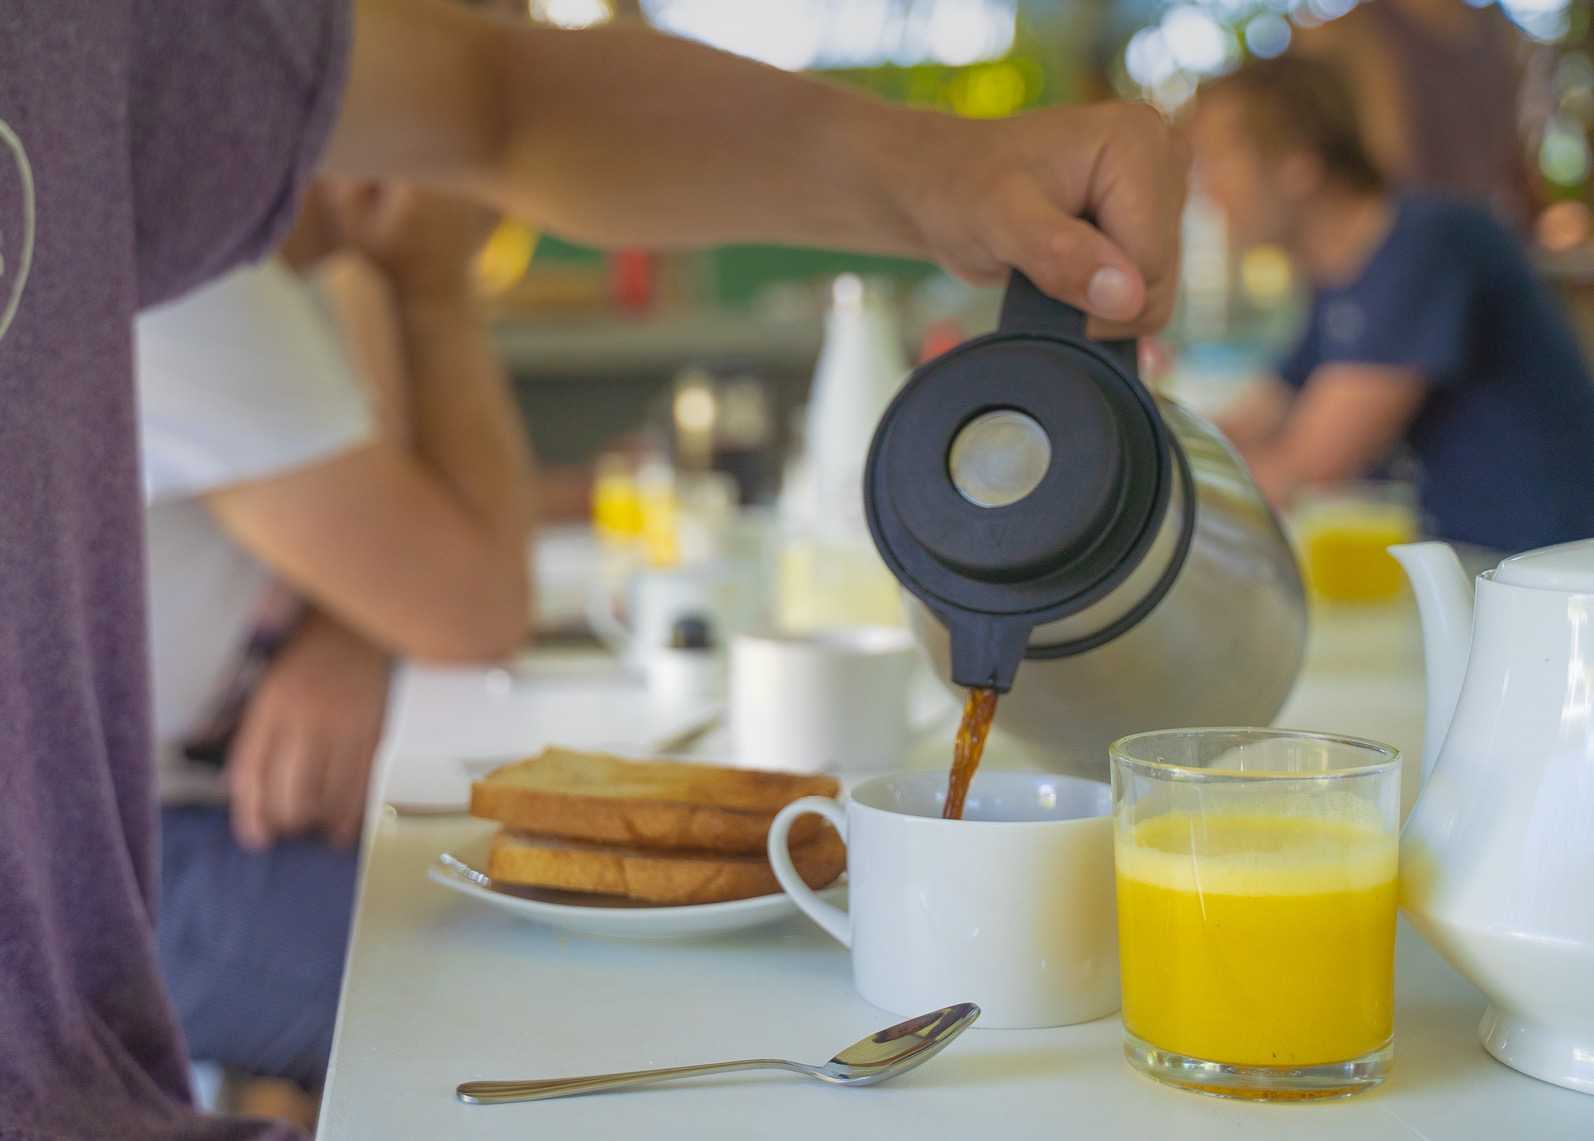 20191018 - Surf House Morning and Food-1